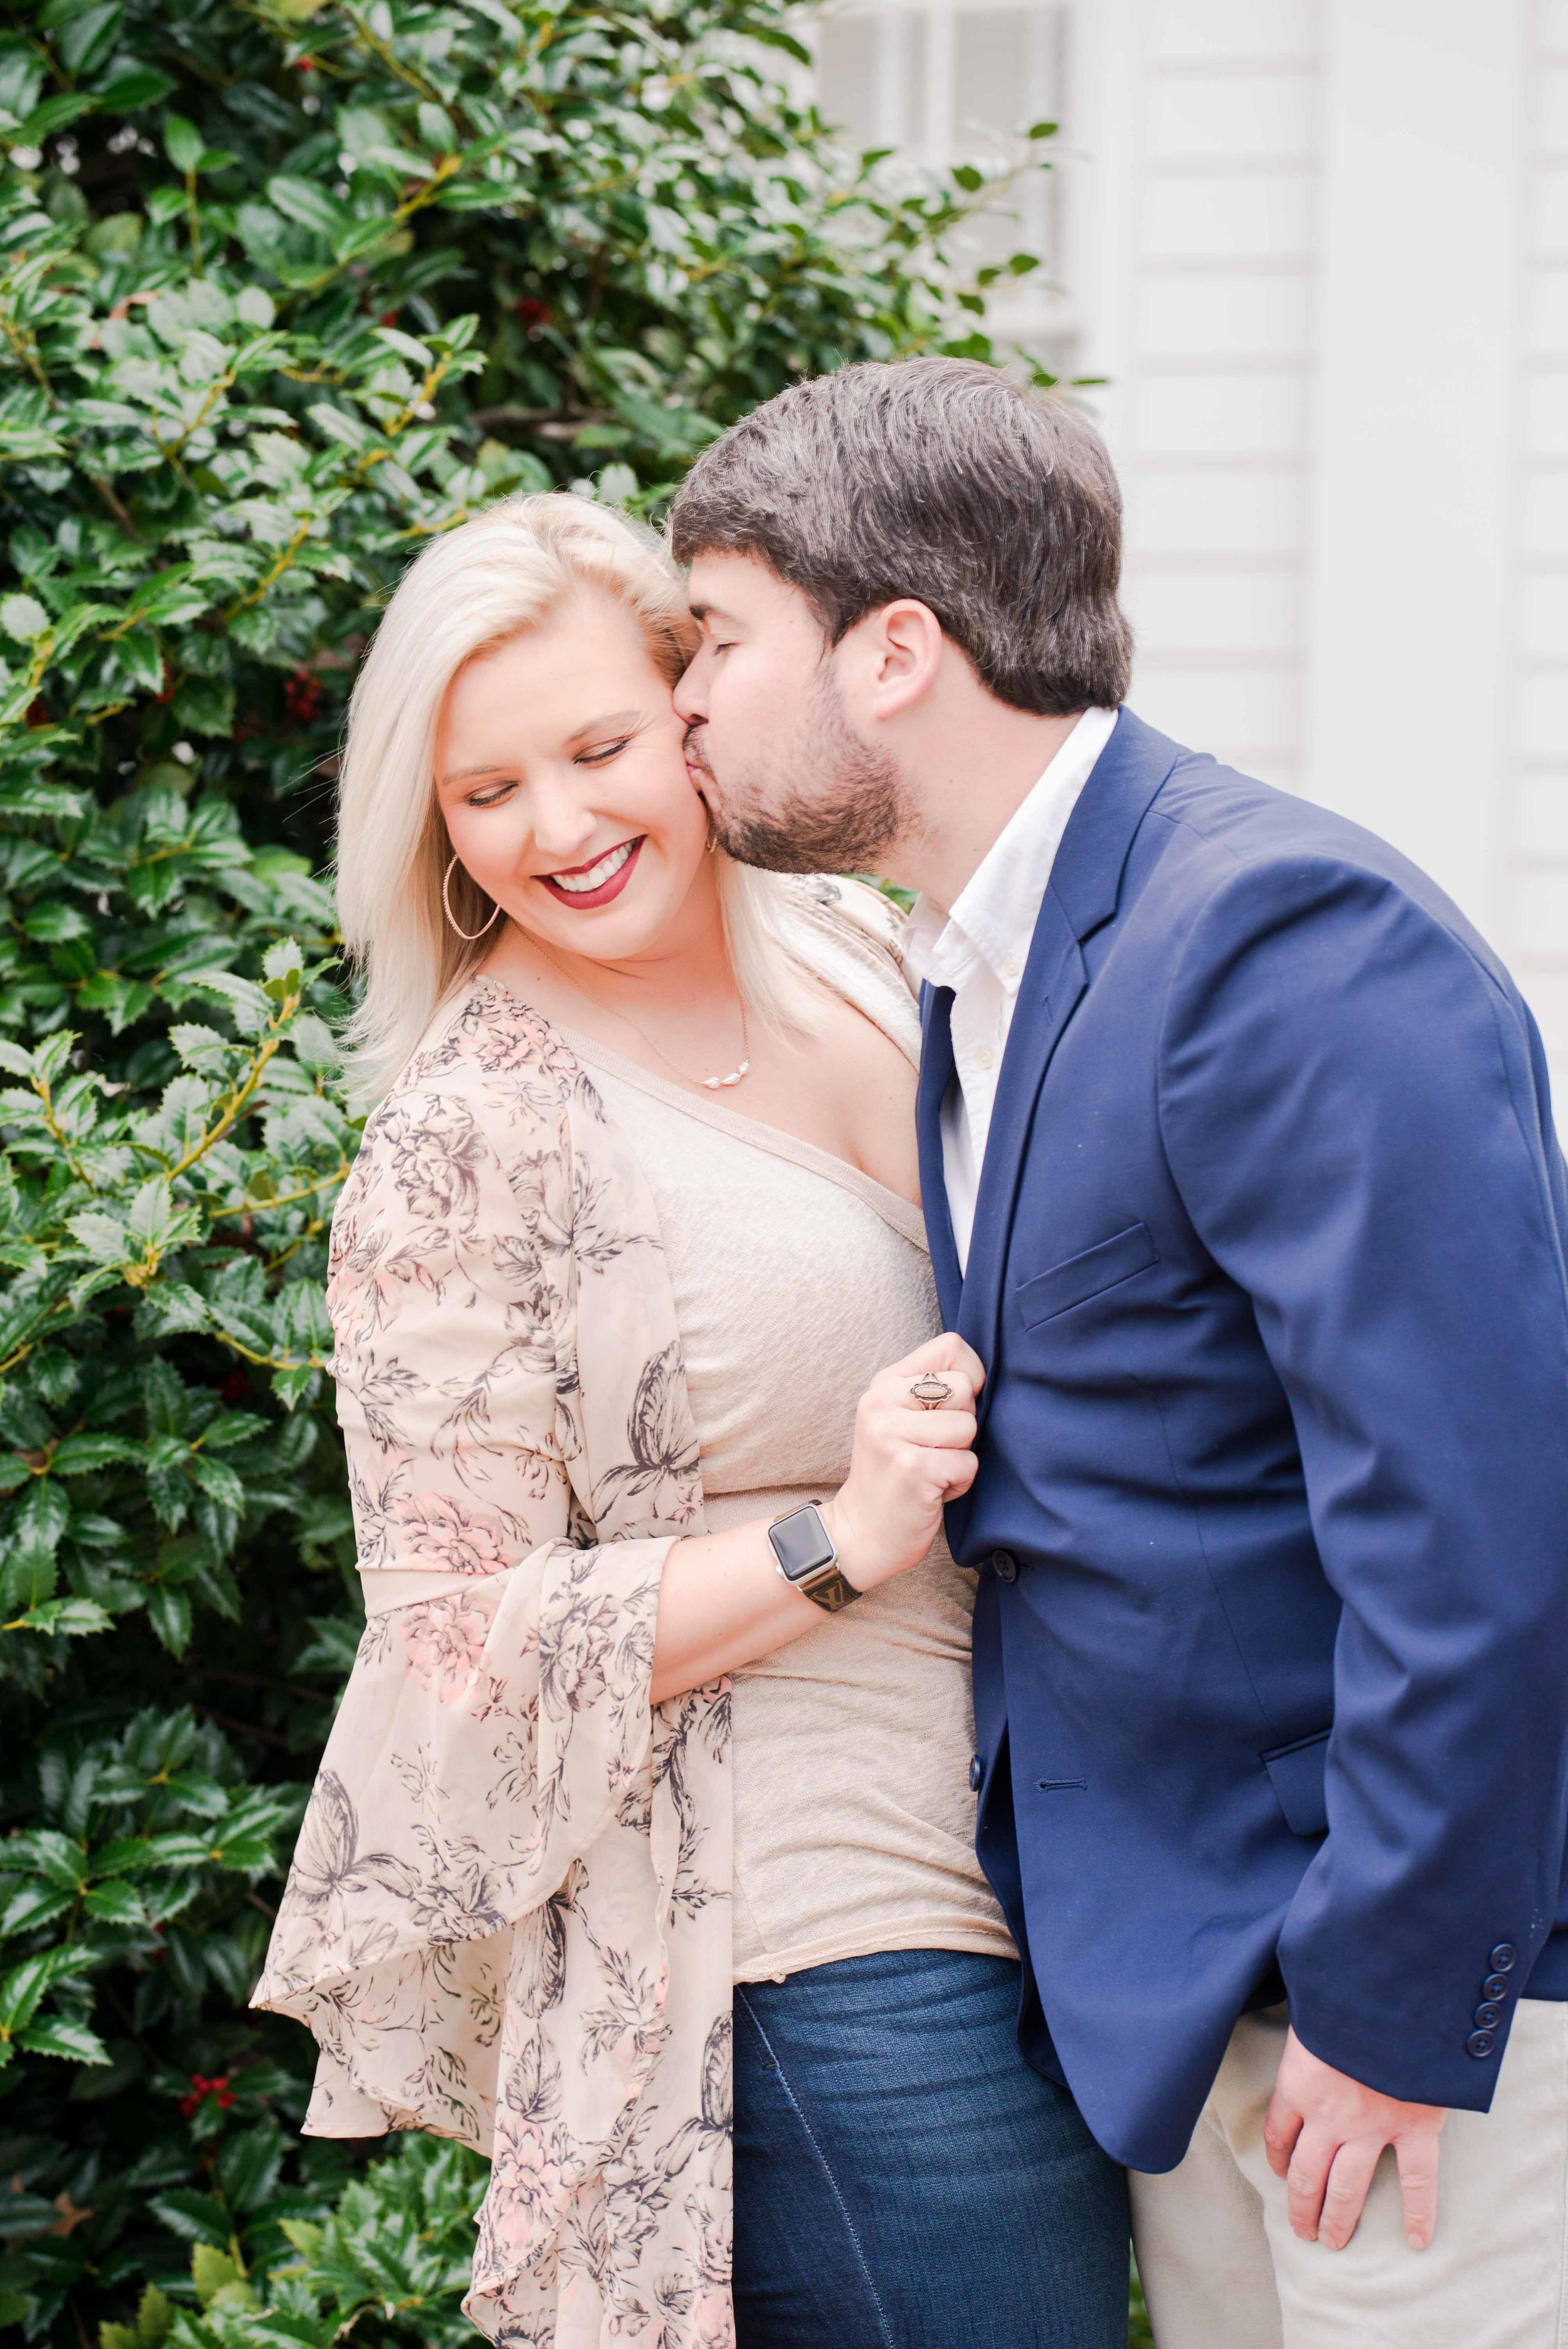 Moss Rock Preserve Engagement Session Deborah Michelle Photography Birmingham Alabama